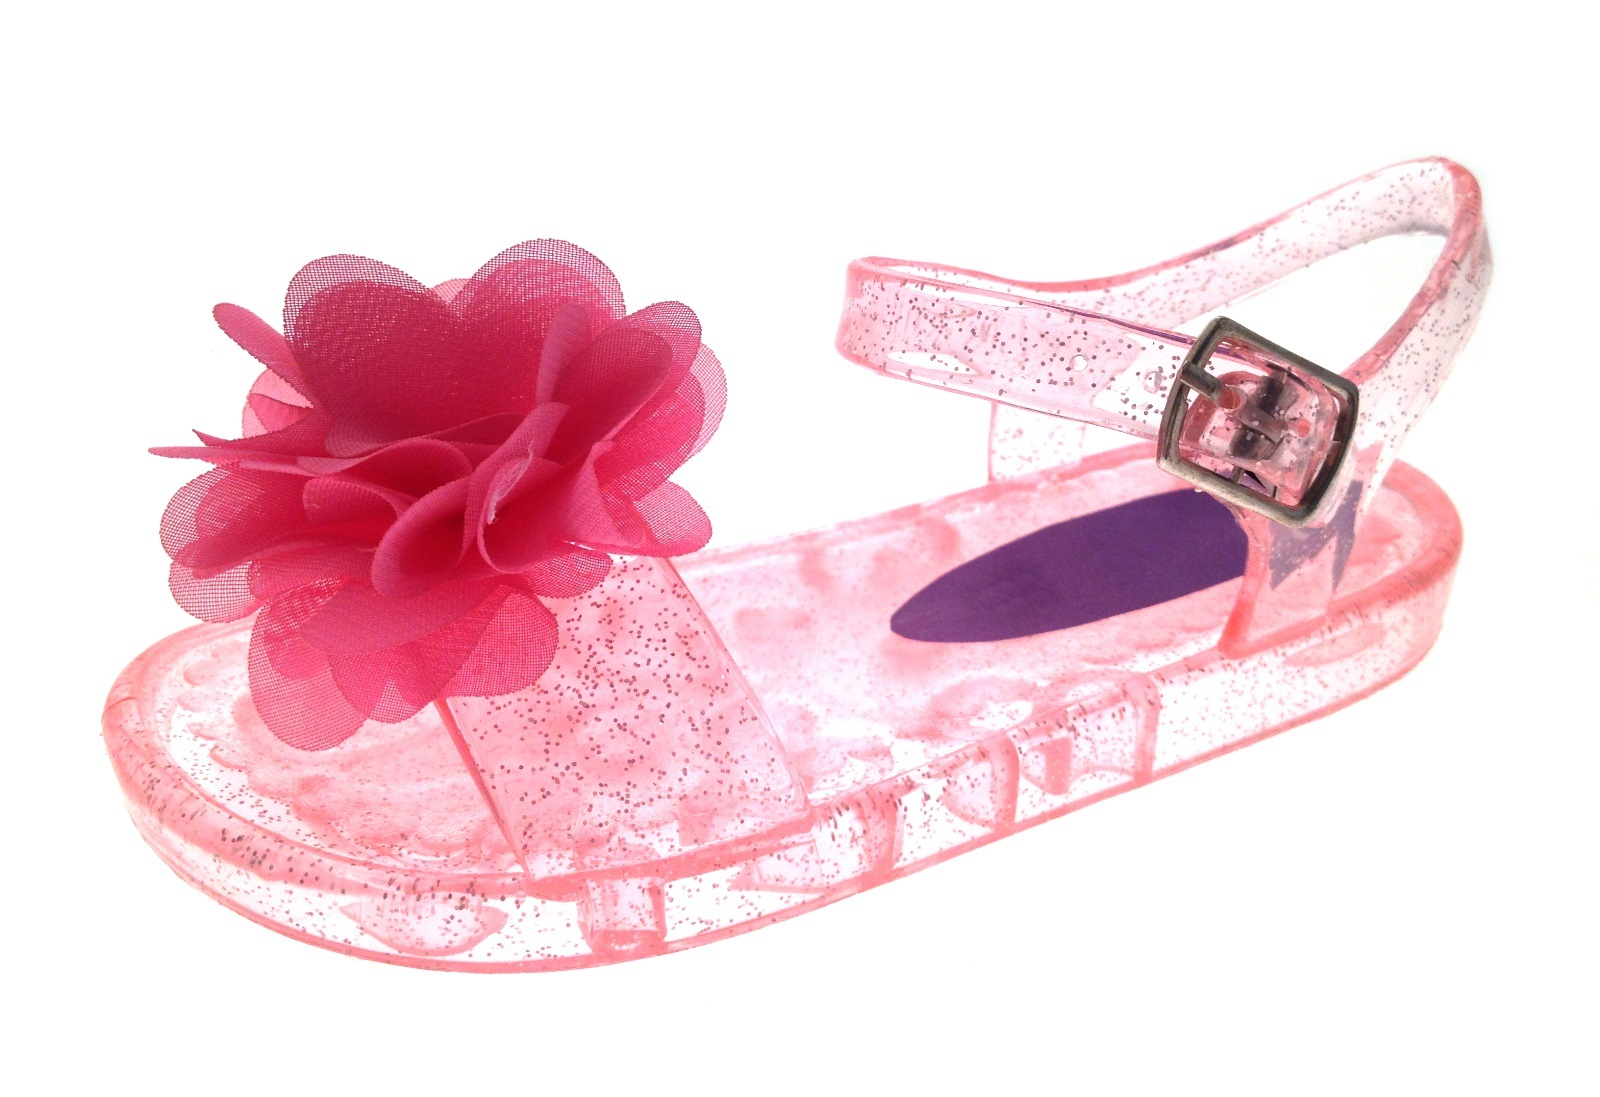 aecedd5ea0c Girls Jelly Sandals Shoes Kids Flat Summer Beach Flower Jellies Kids ...